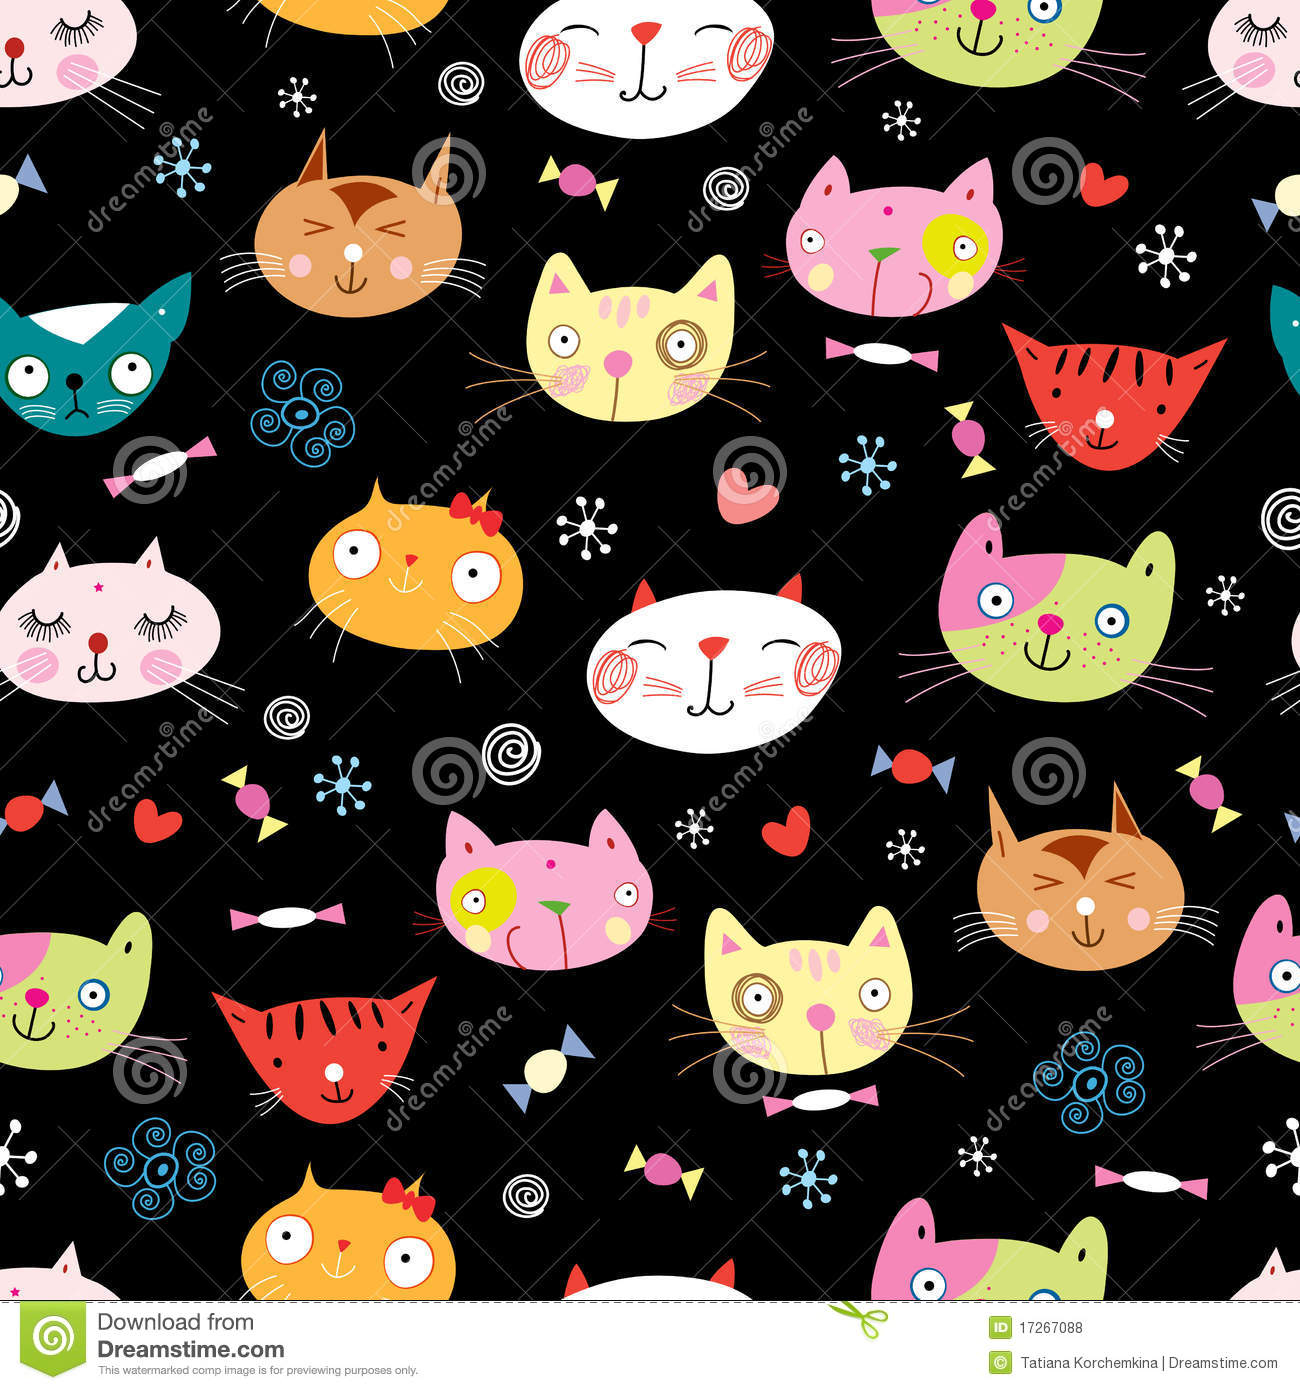 Seamless pattern of the cats